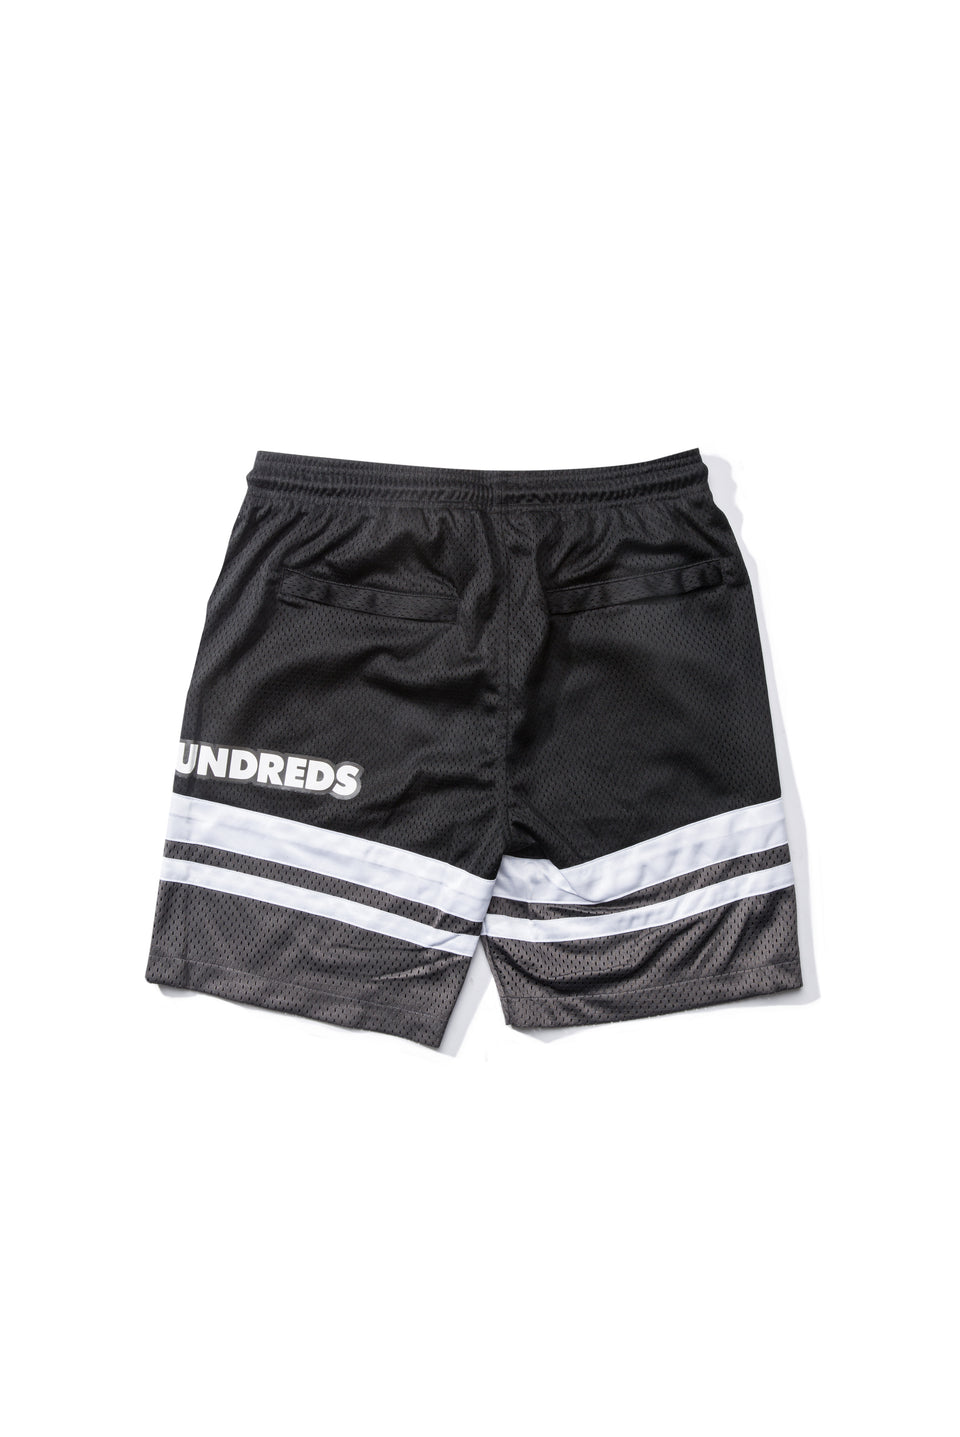 League Shorts